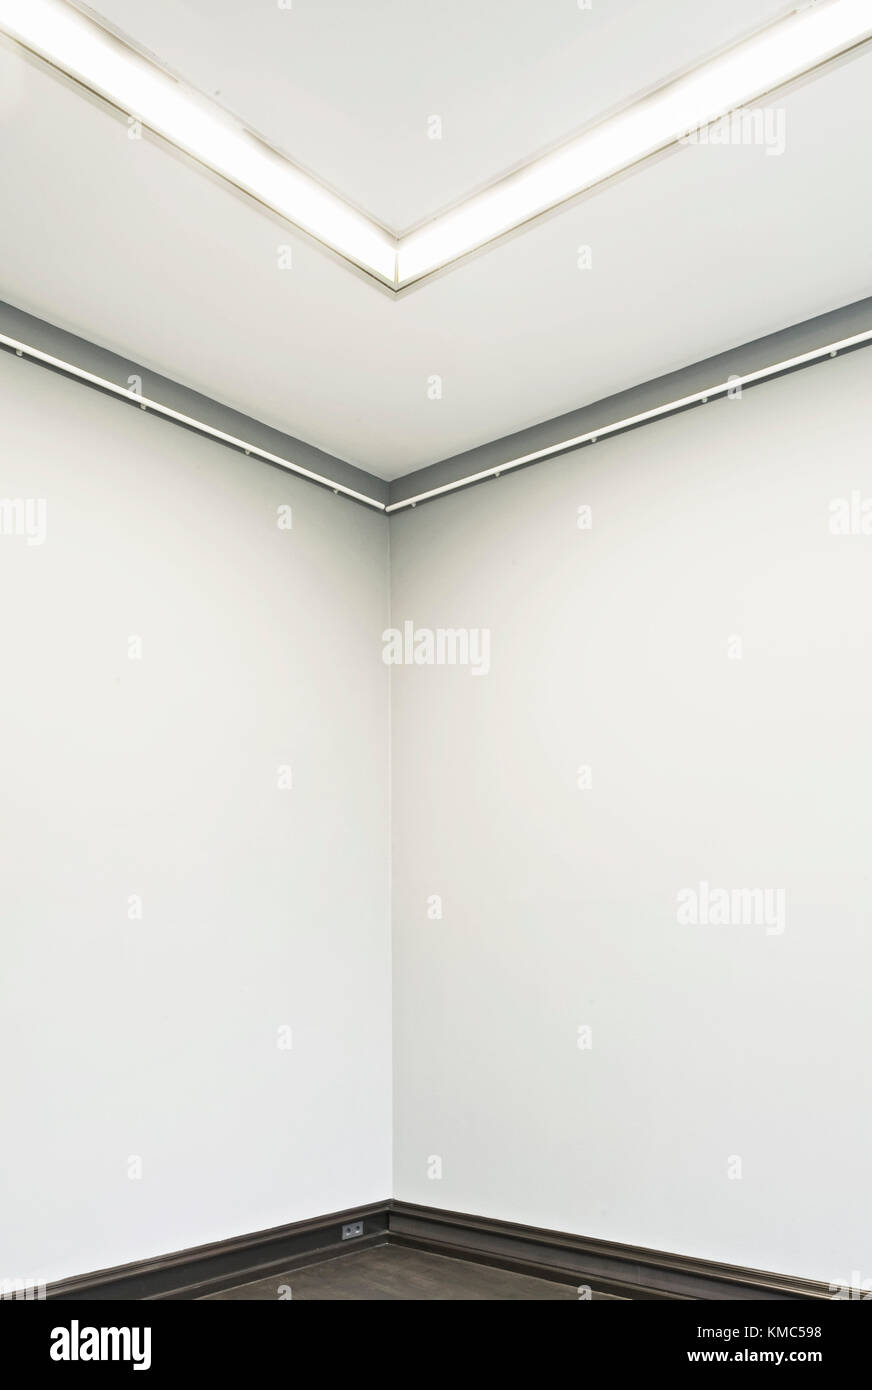 Empty Art Gallery Stock Photos & Empty Art Gallery Stock Images - Alamy